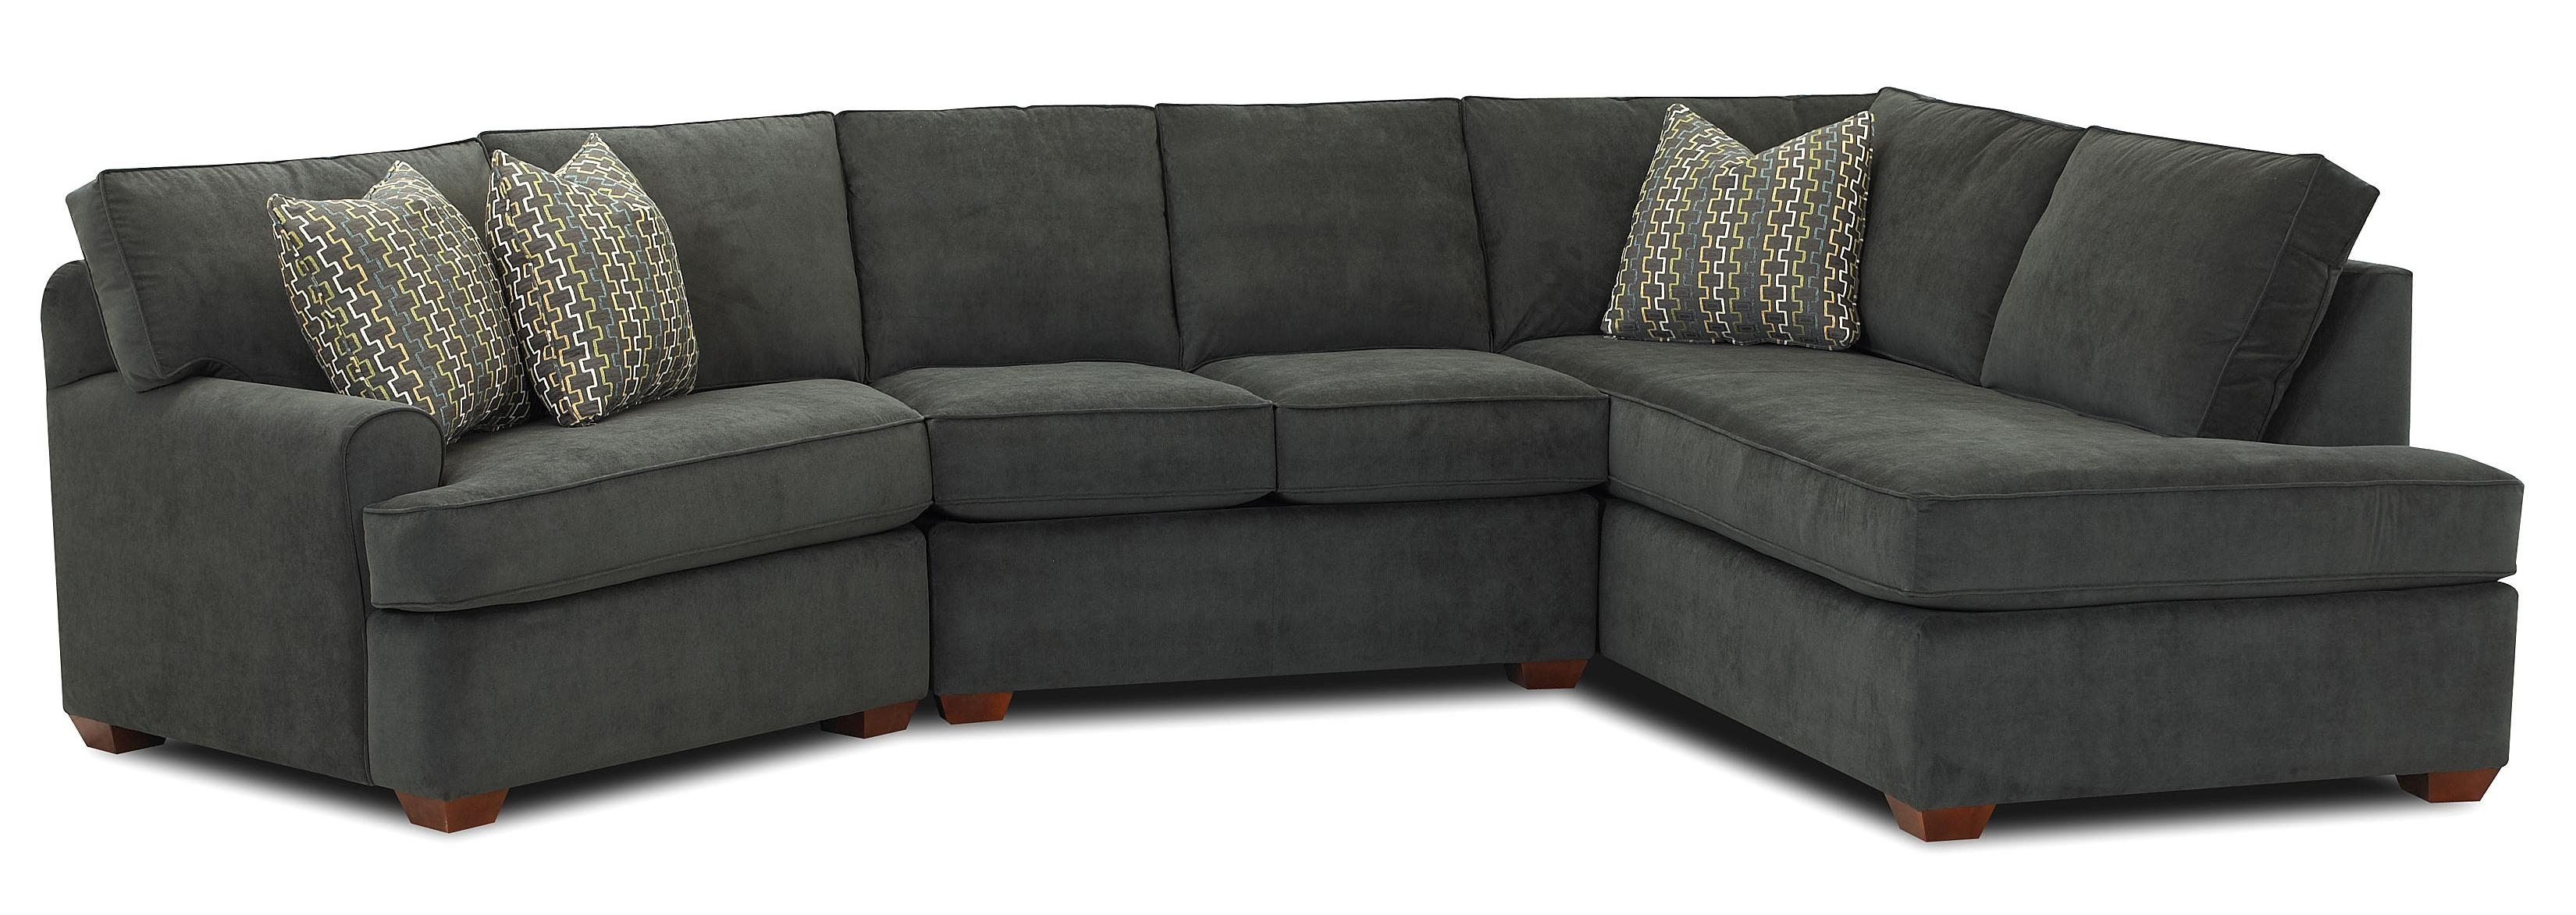 Sectional Sofas Chaise – 100 Images – Sectional With Ottoman And For Sectional Sofas With Chaise (Image 8 of 10)